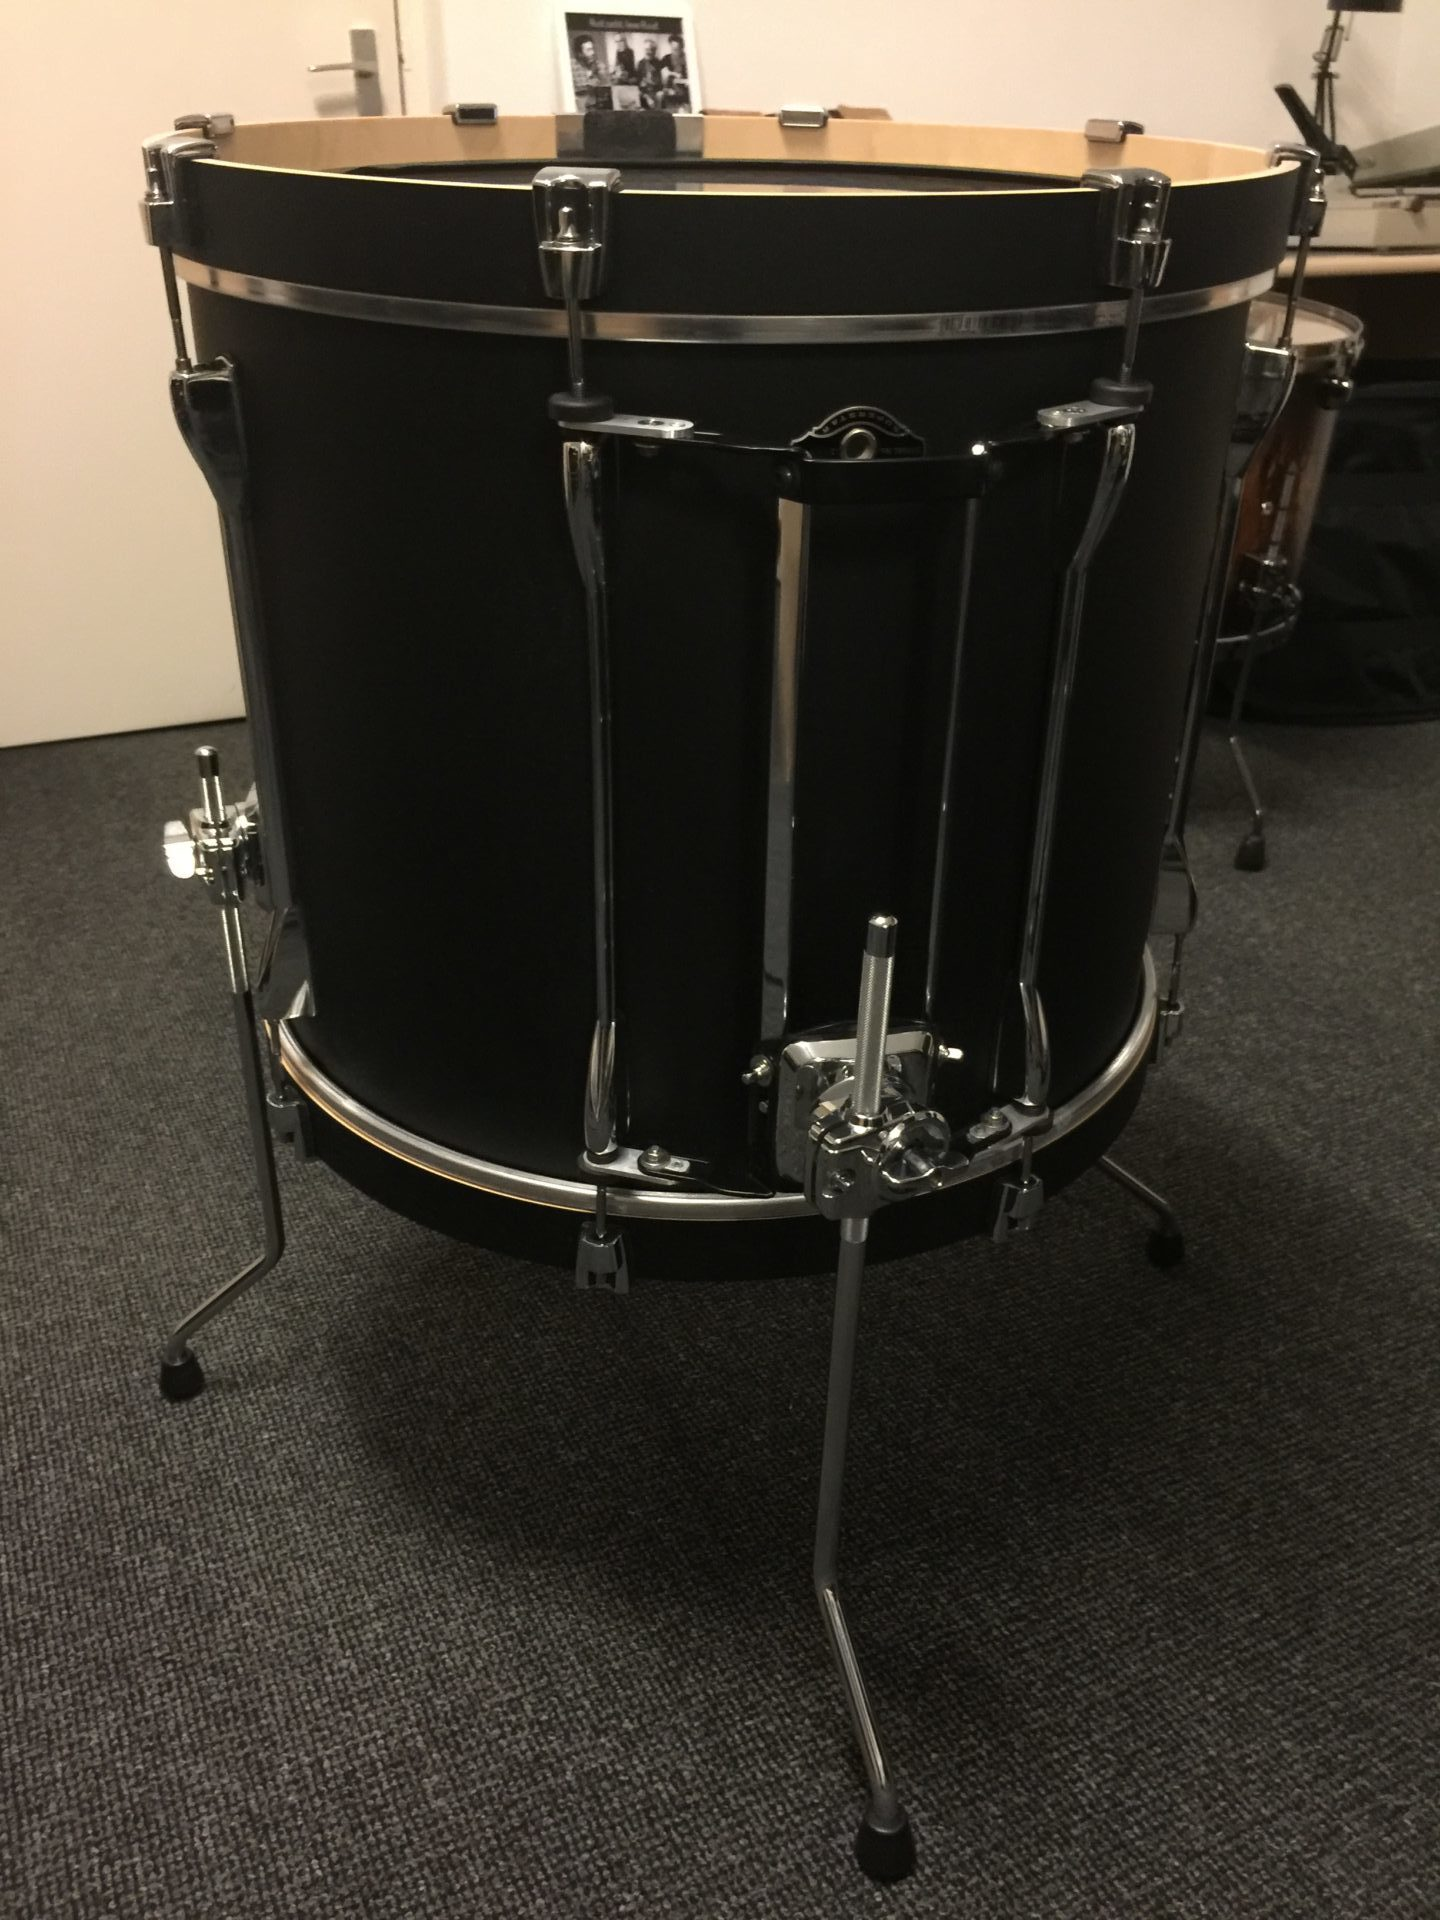 Tama Bass Drum Converted to Floor Tom